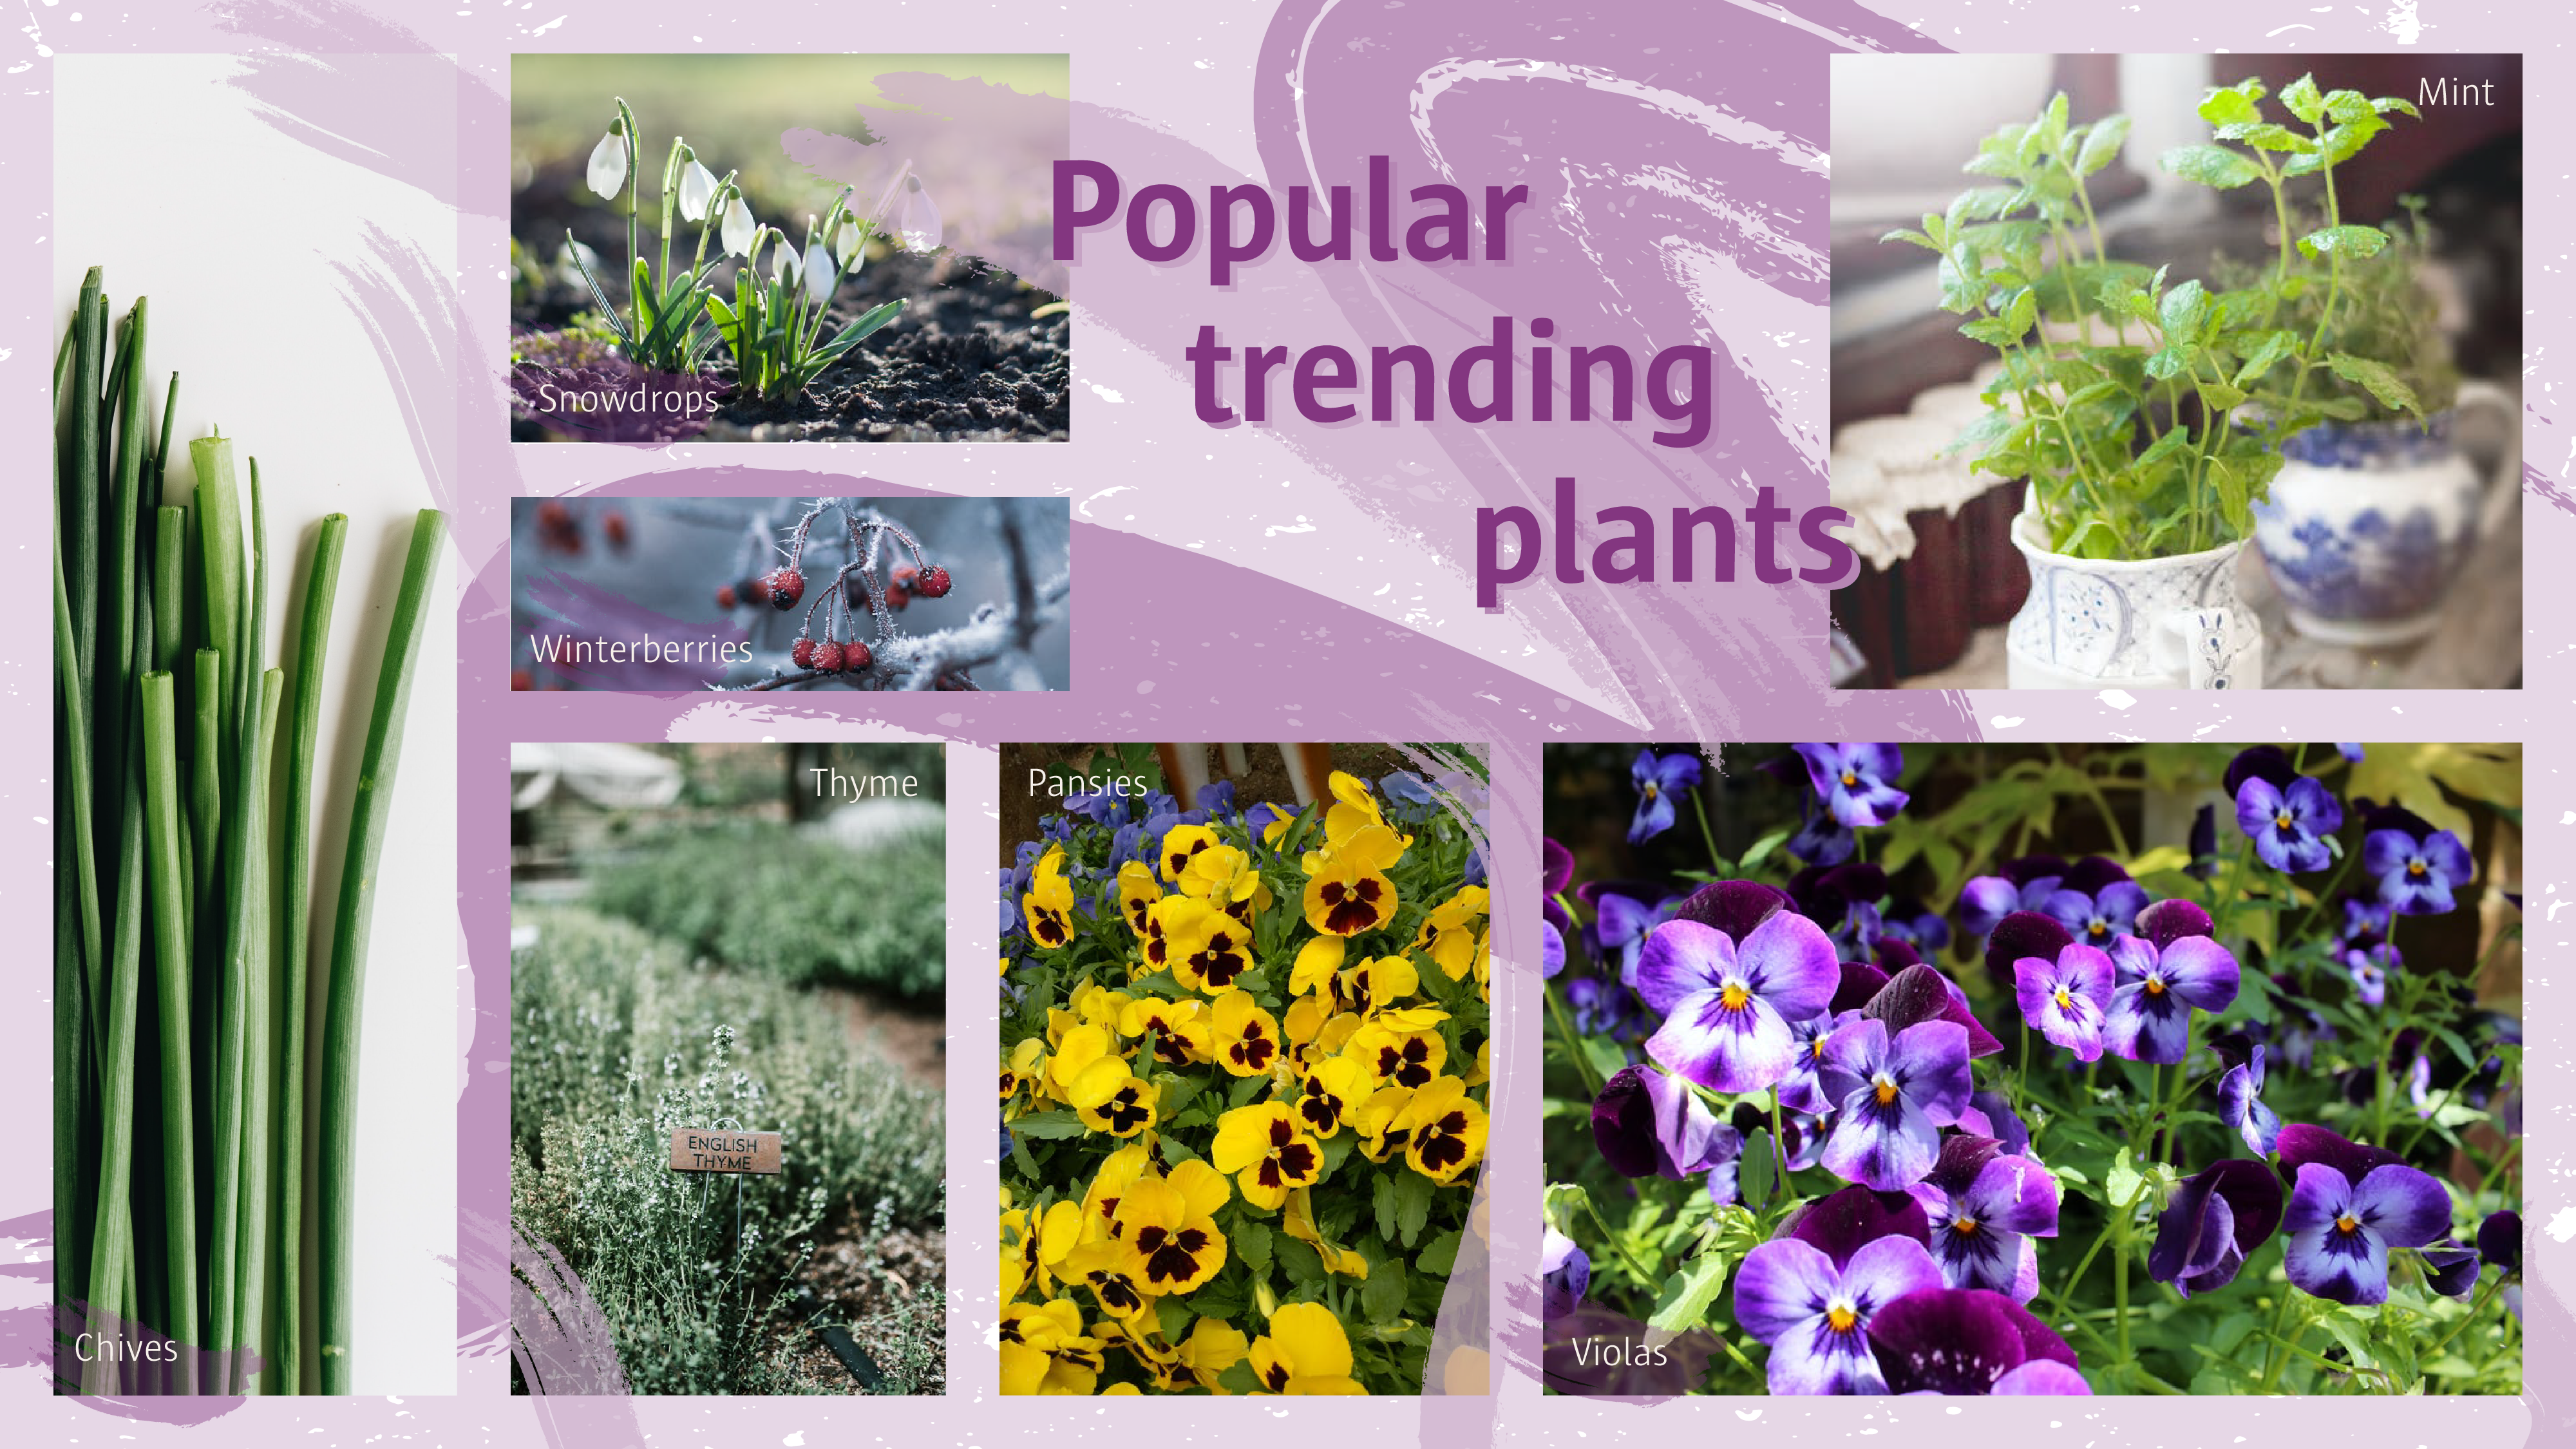 Popular flowers which are trending.